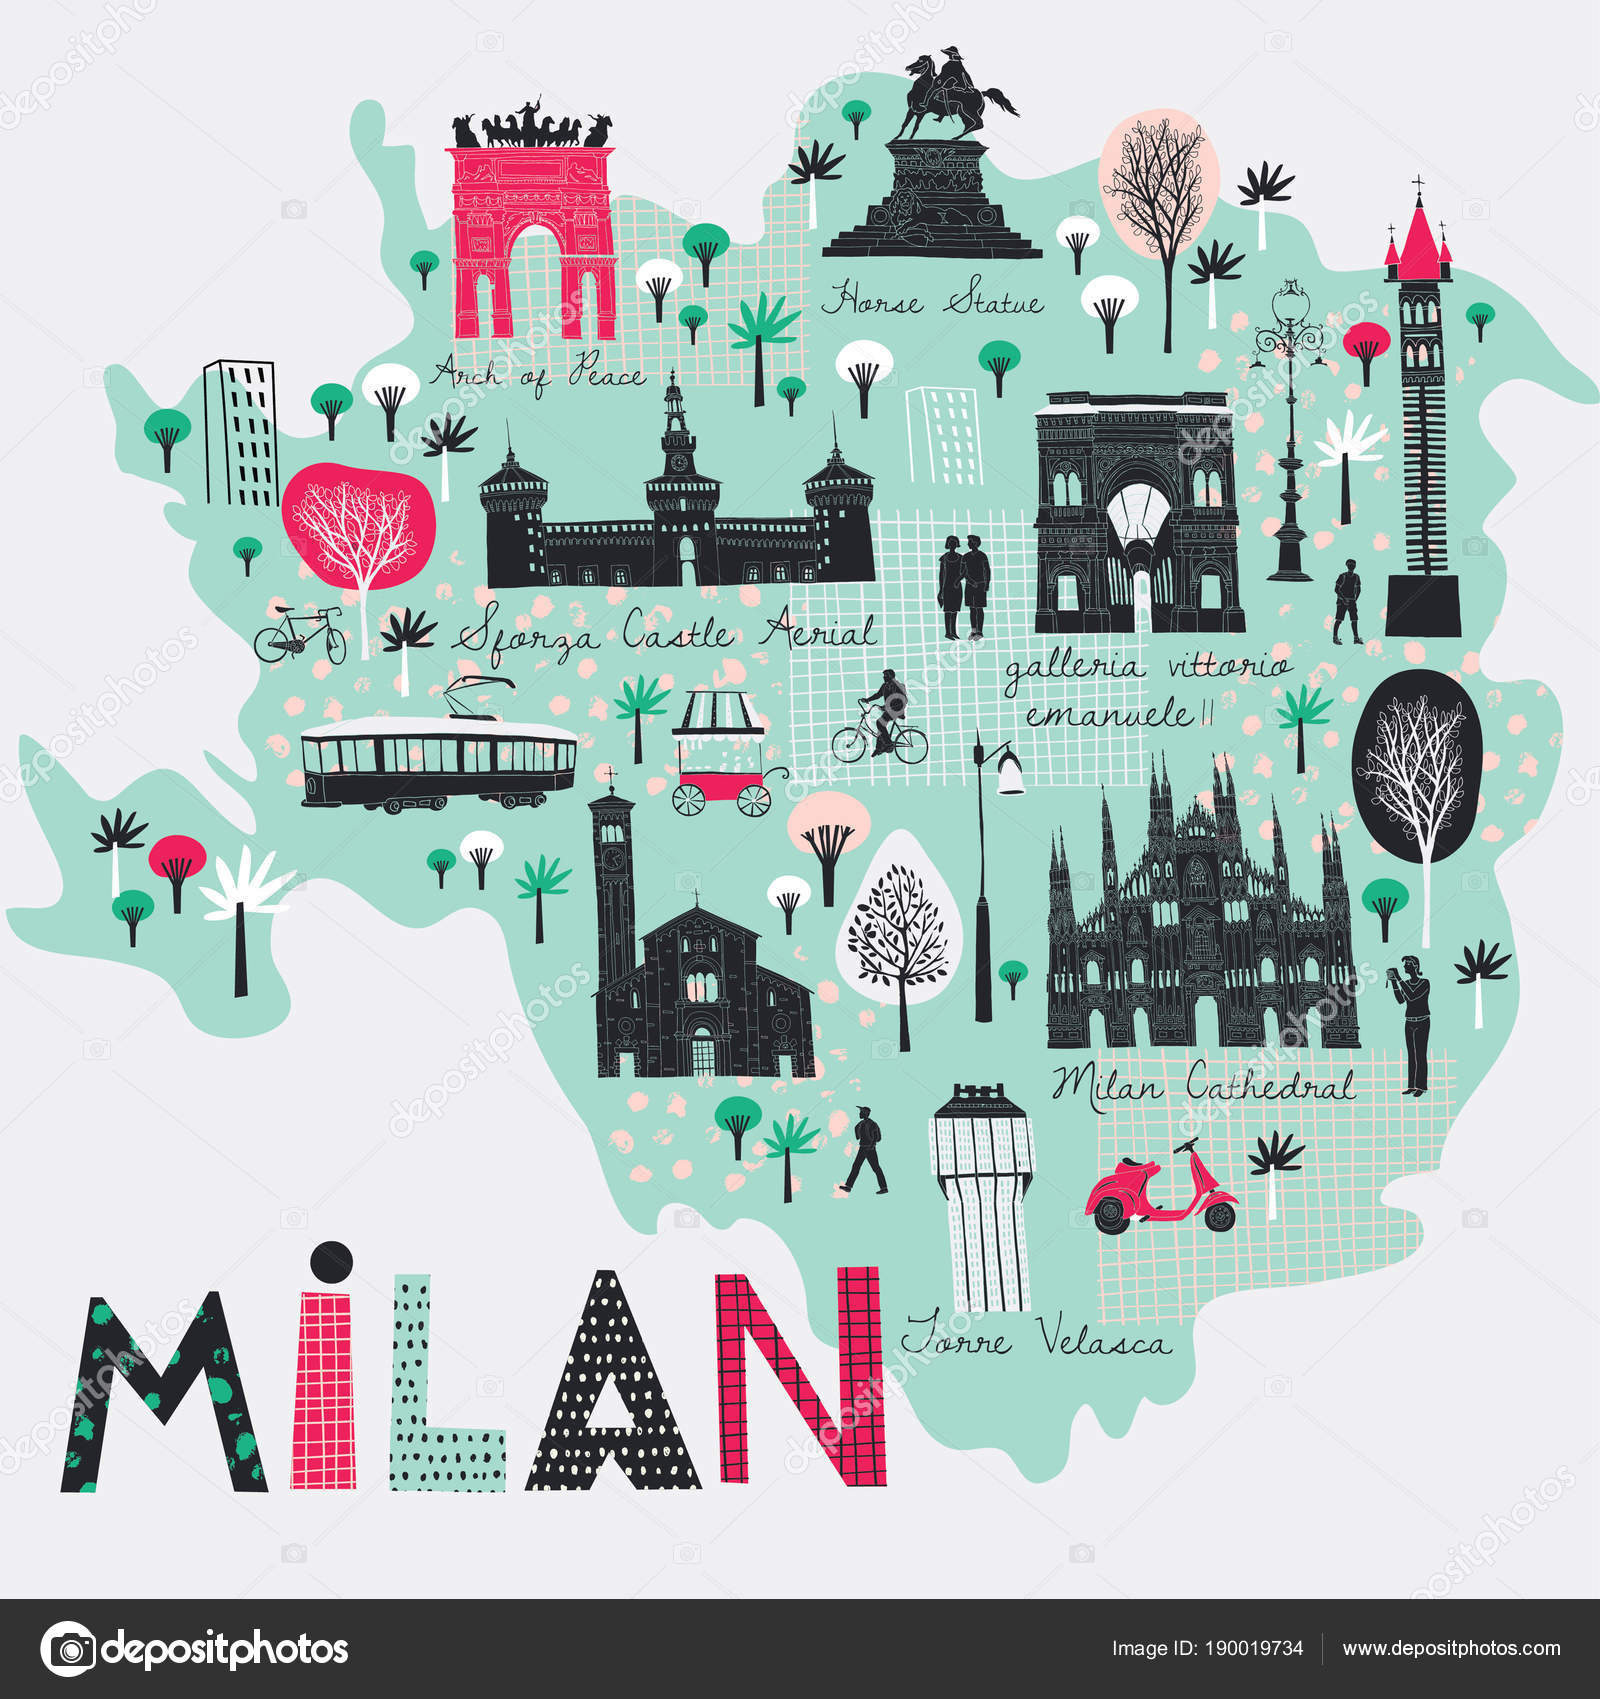 Milan Map Of Italy.Cartoon Map Milan Italy Print Design Stock Vector C Lavandaart